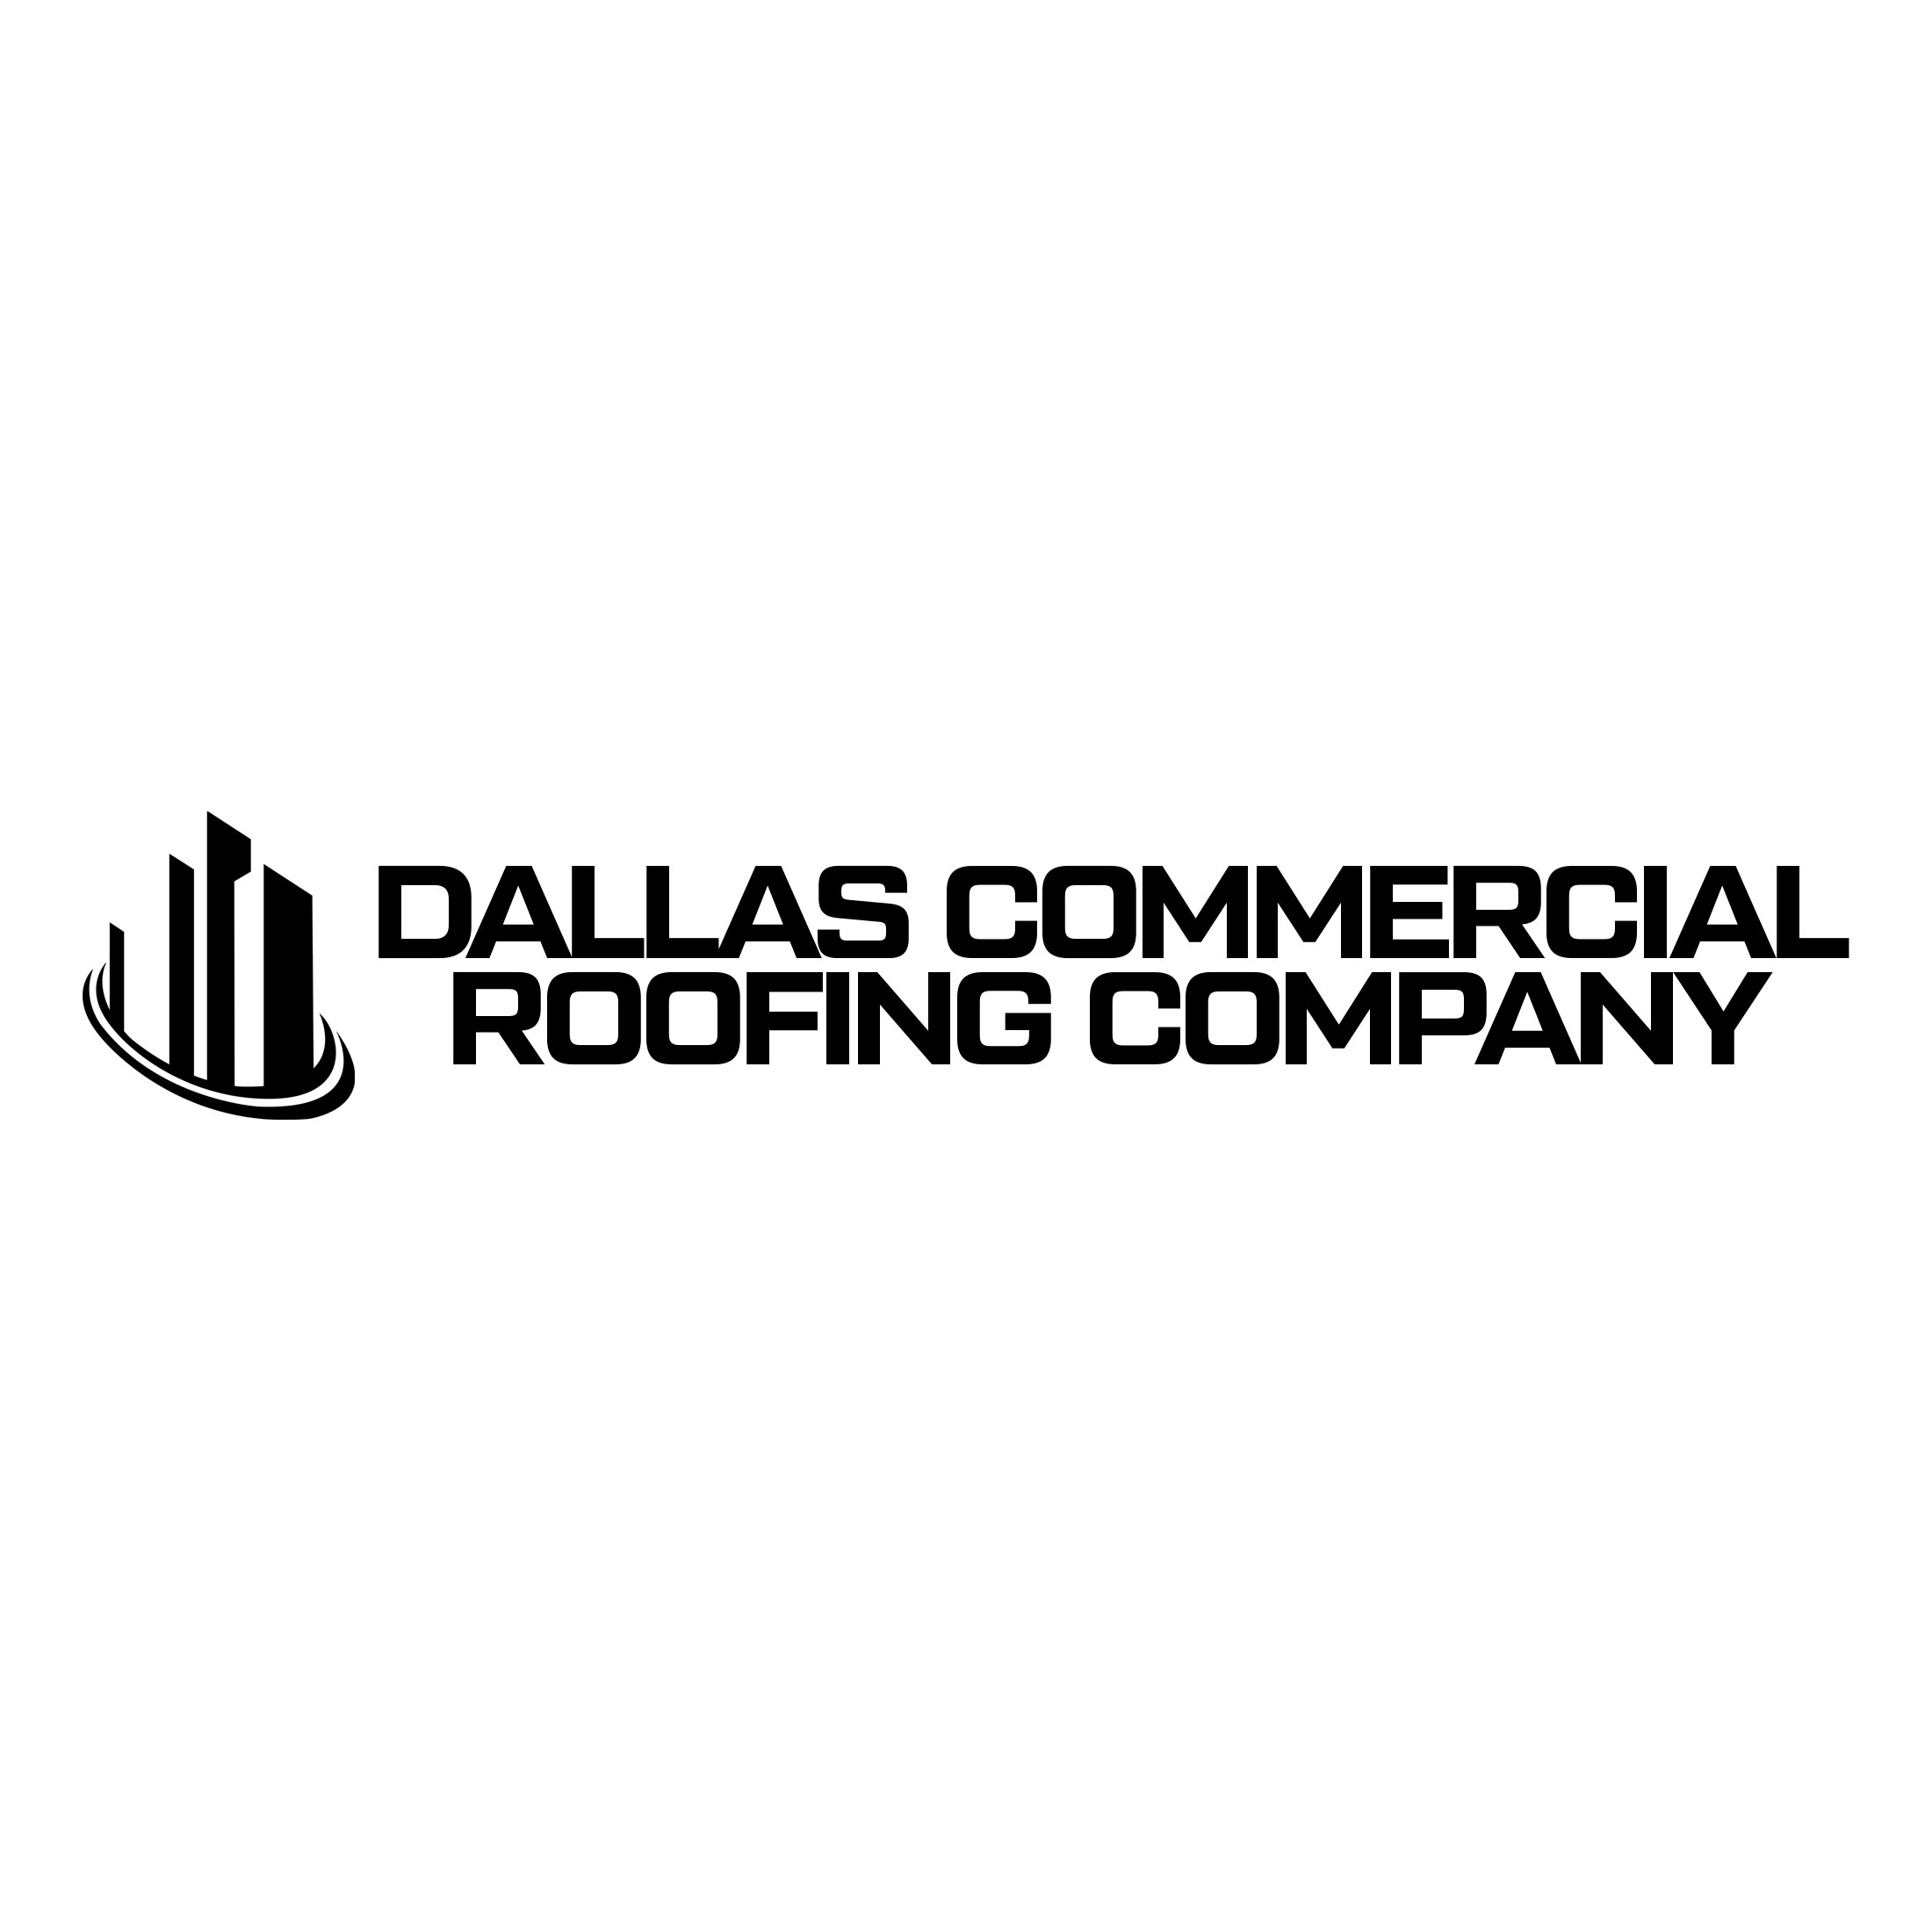 Denver Commercial Roofing Company